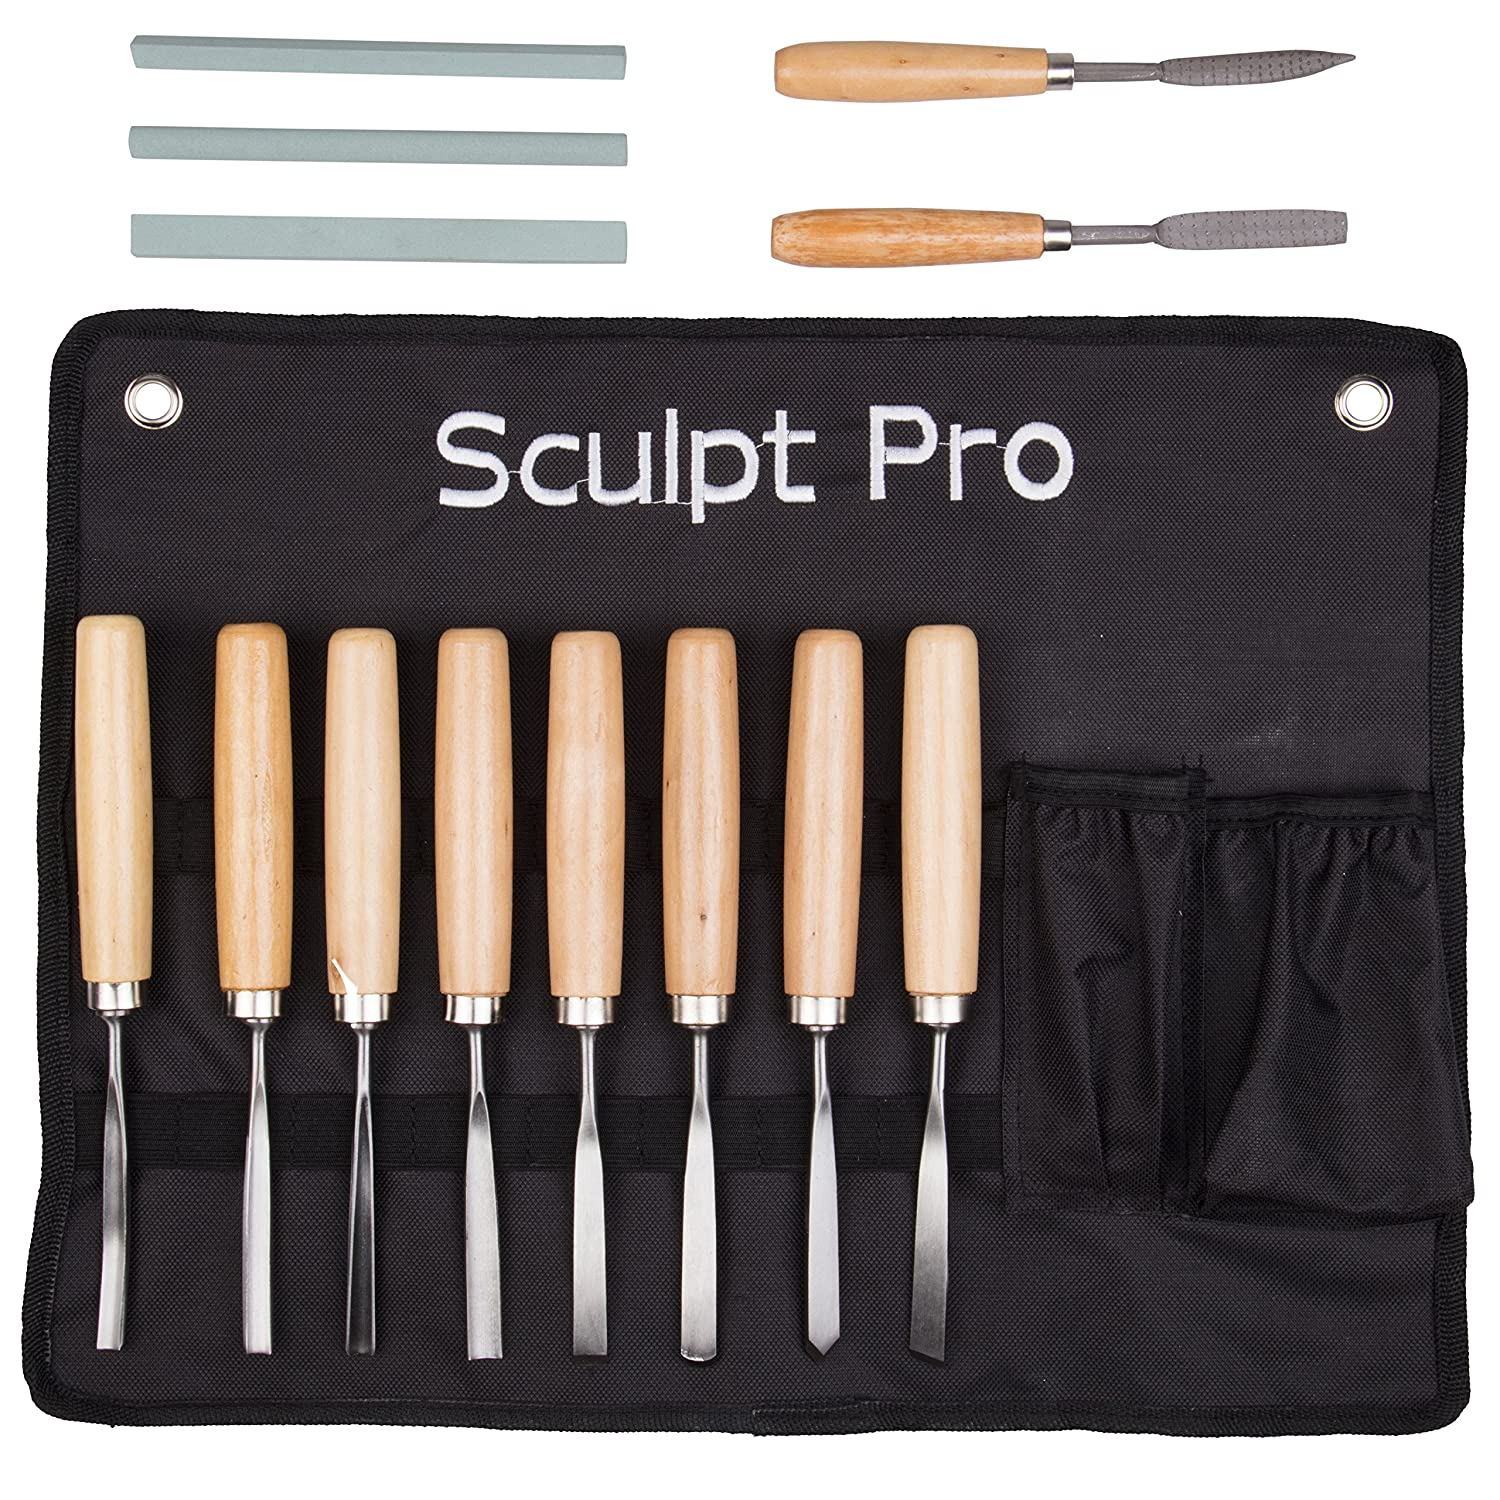 Wood Carving Chisel Set- 13 pc Professional Wood Carving Tools with Carrying Case Sculpt Pro PTK_13CH238